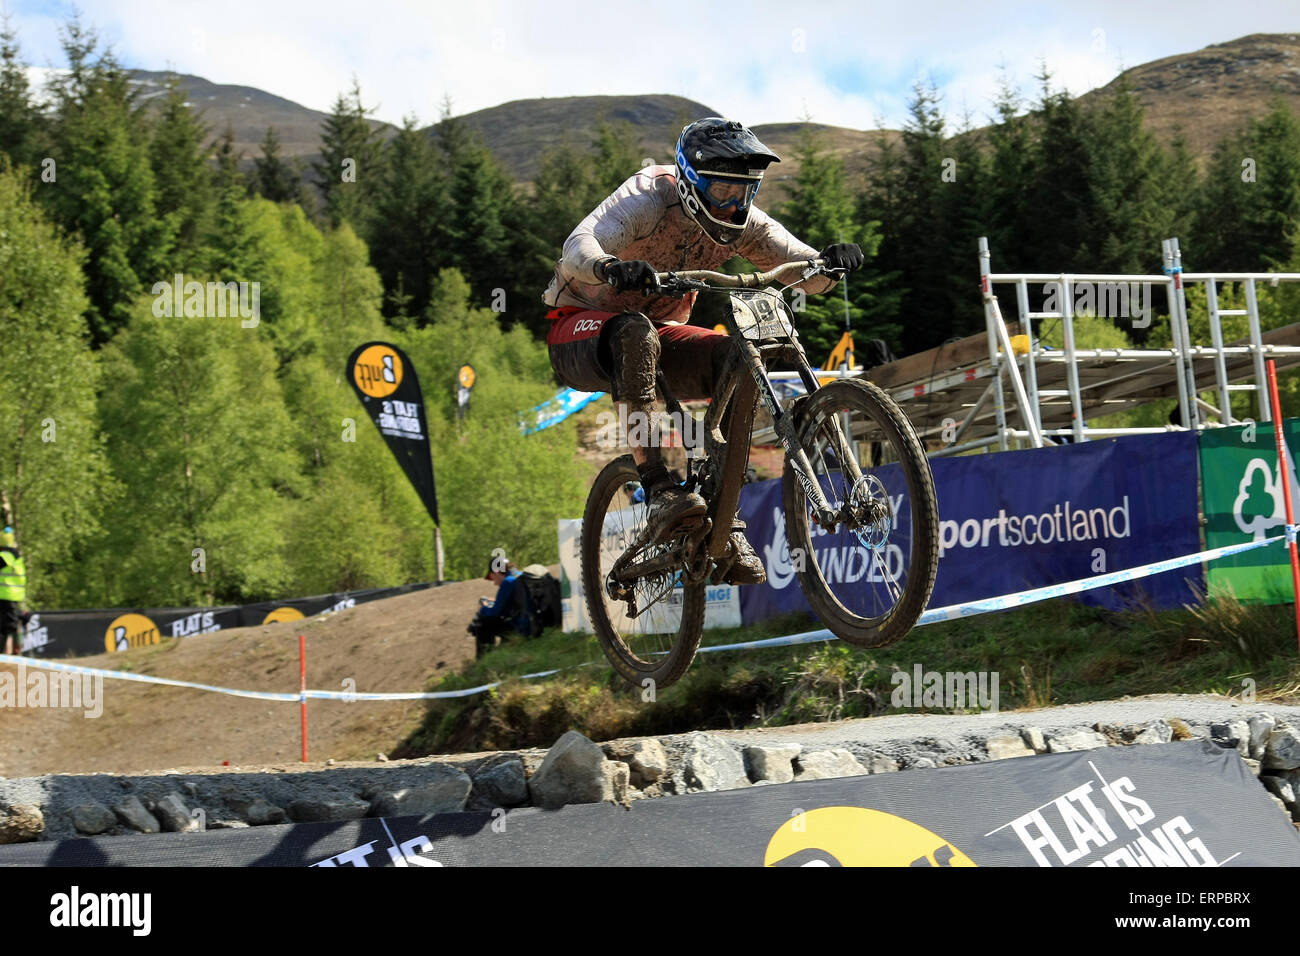 Fort William, Scotland, UK. 05th June, 2015. Extreme weather conditions didn't stop riders practicing on the course - Stock Image